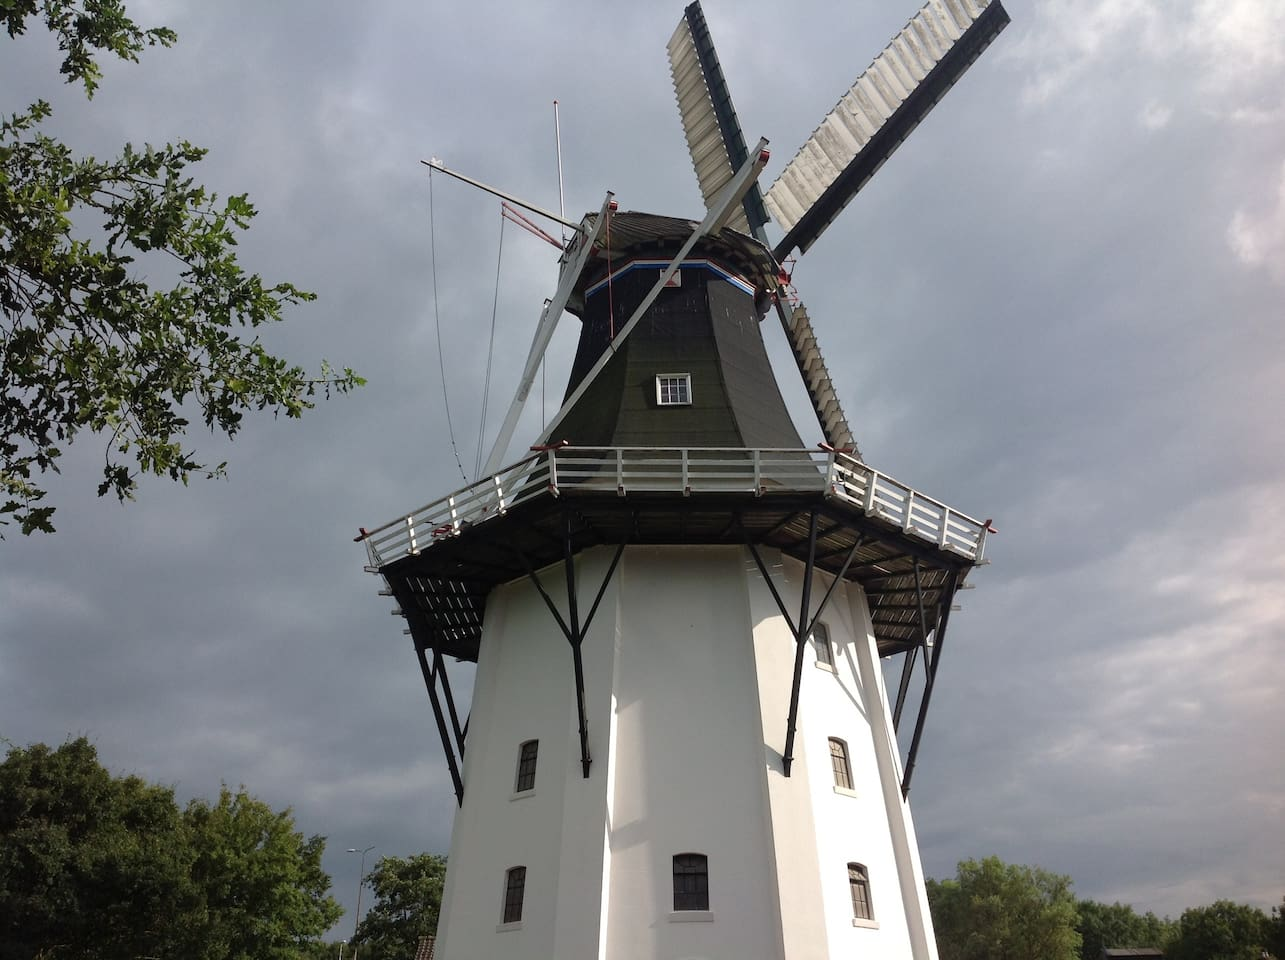 The location is next to the highest mill from Groningen the Wilhelmina mill